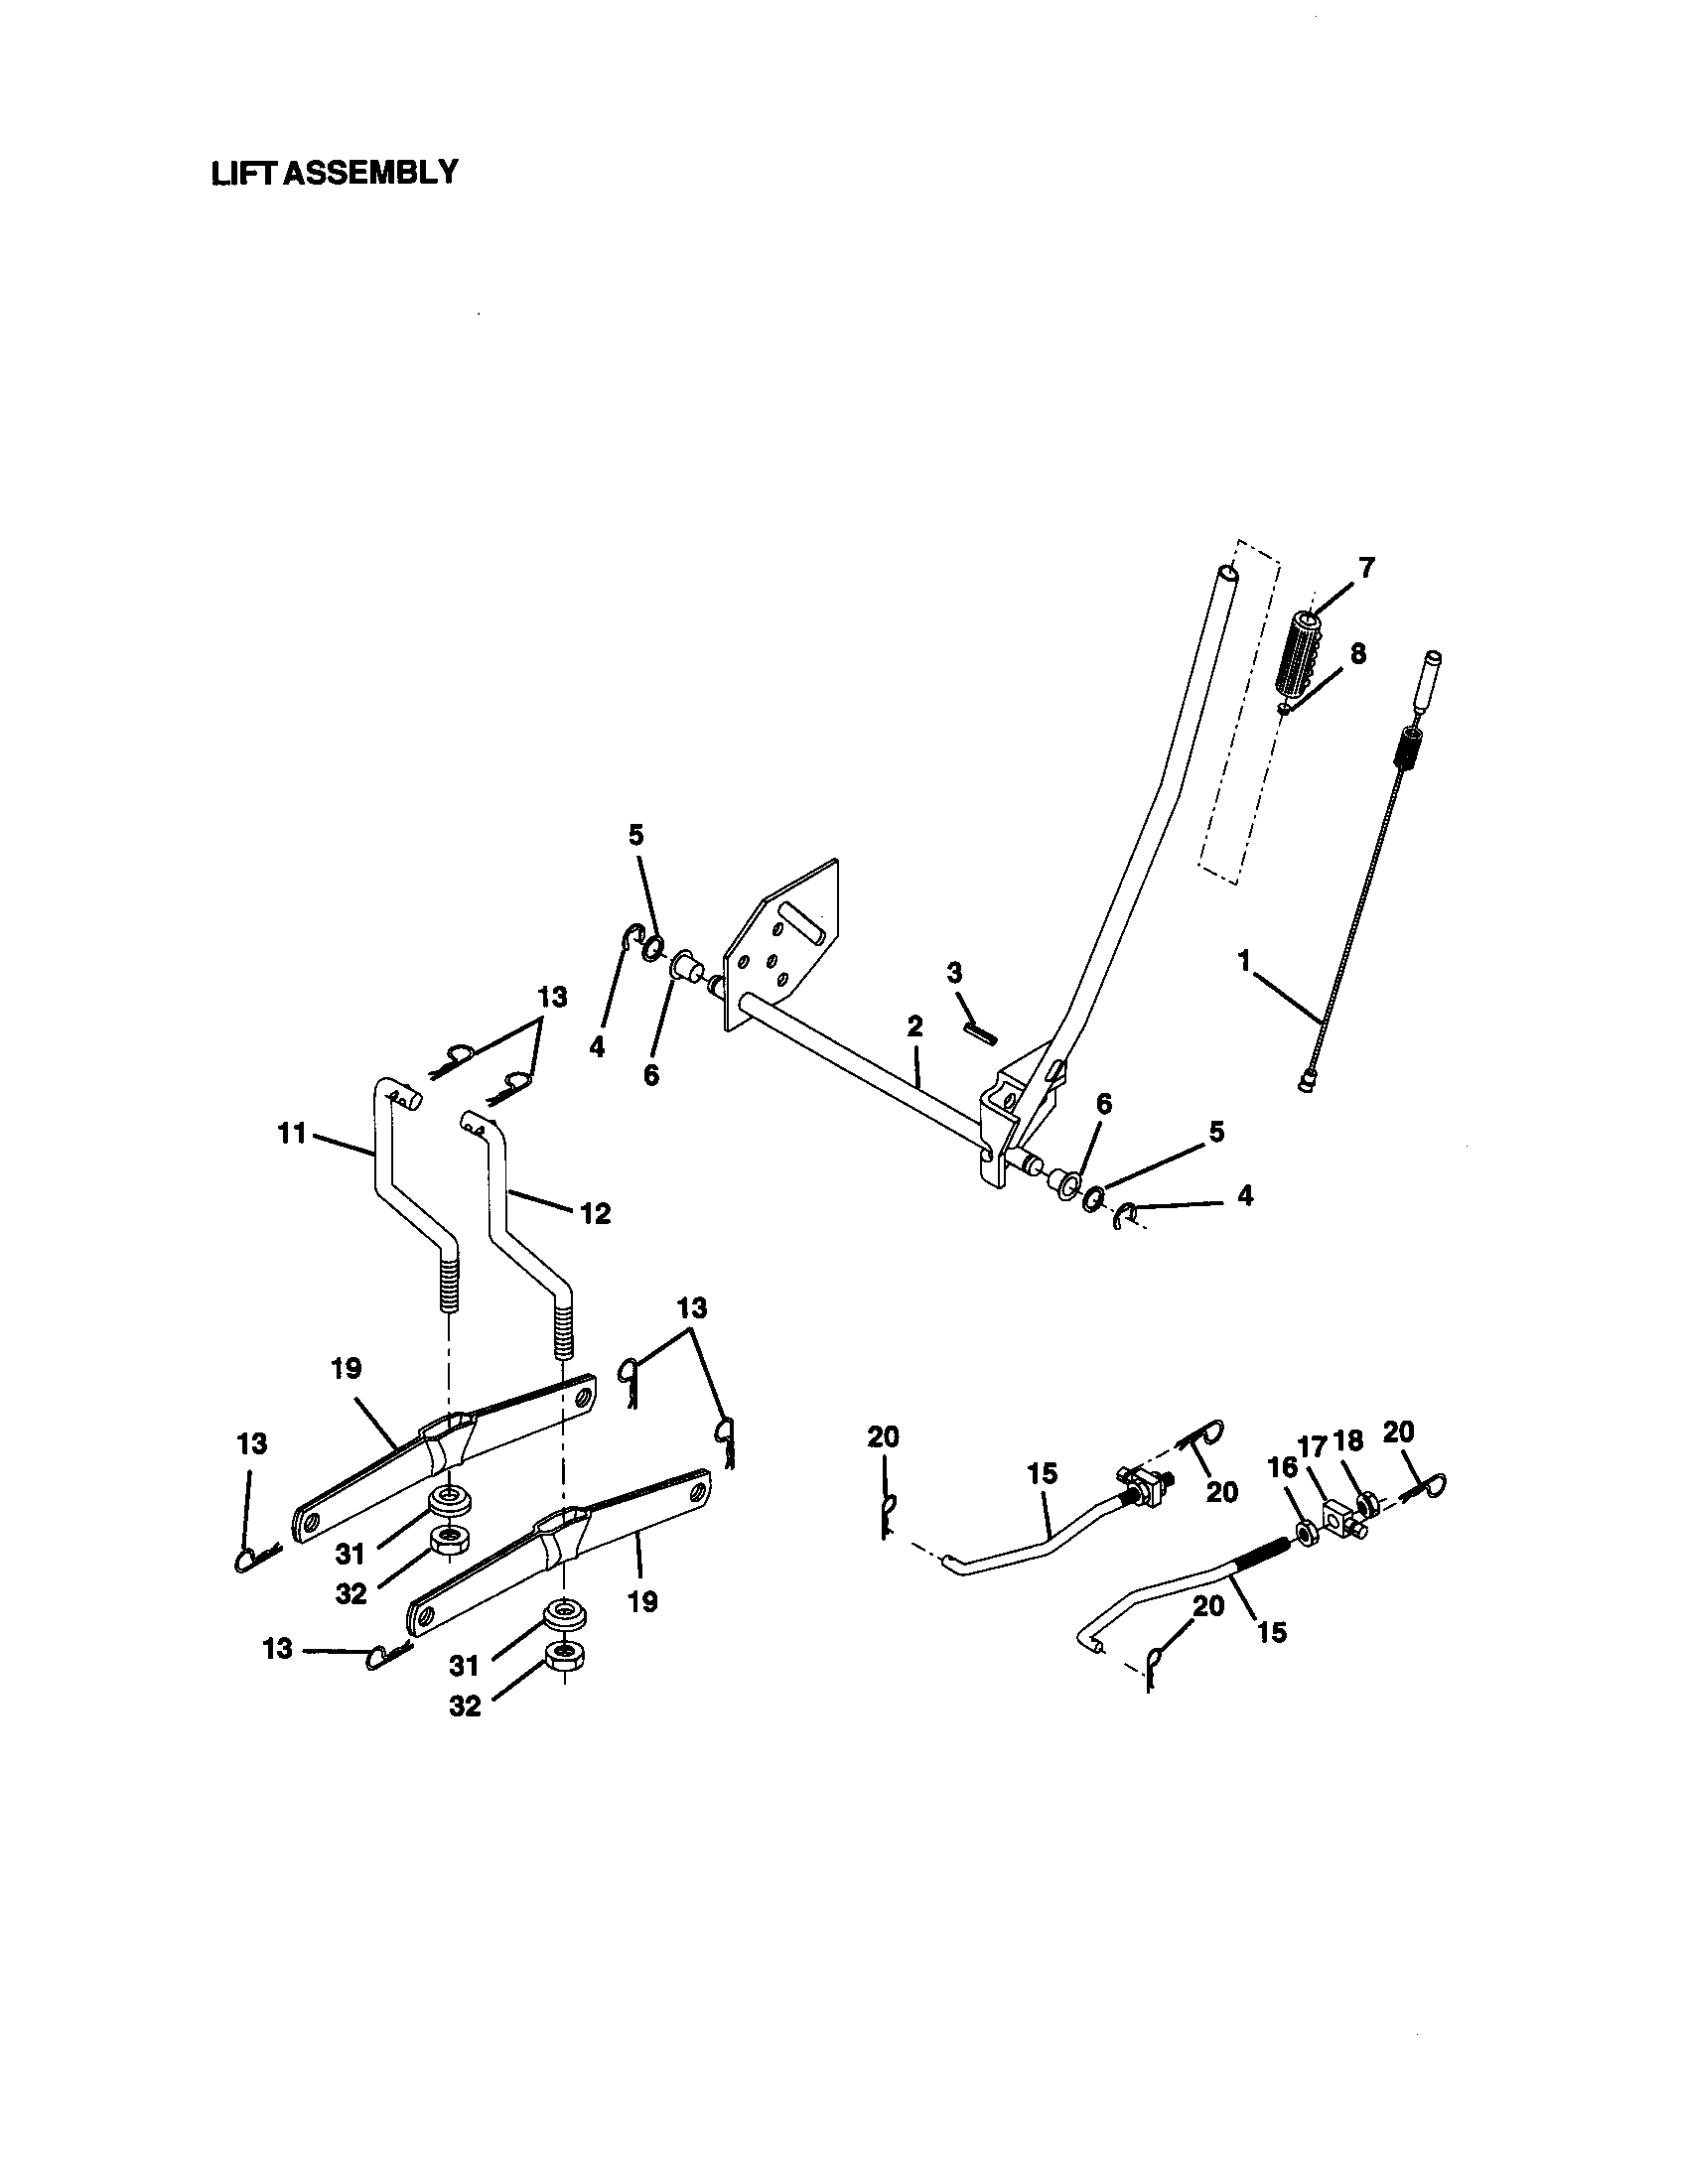 Craftsman 917270923 lift assembly diagram